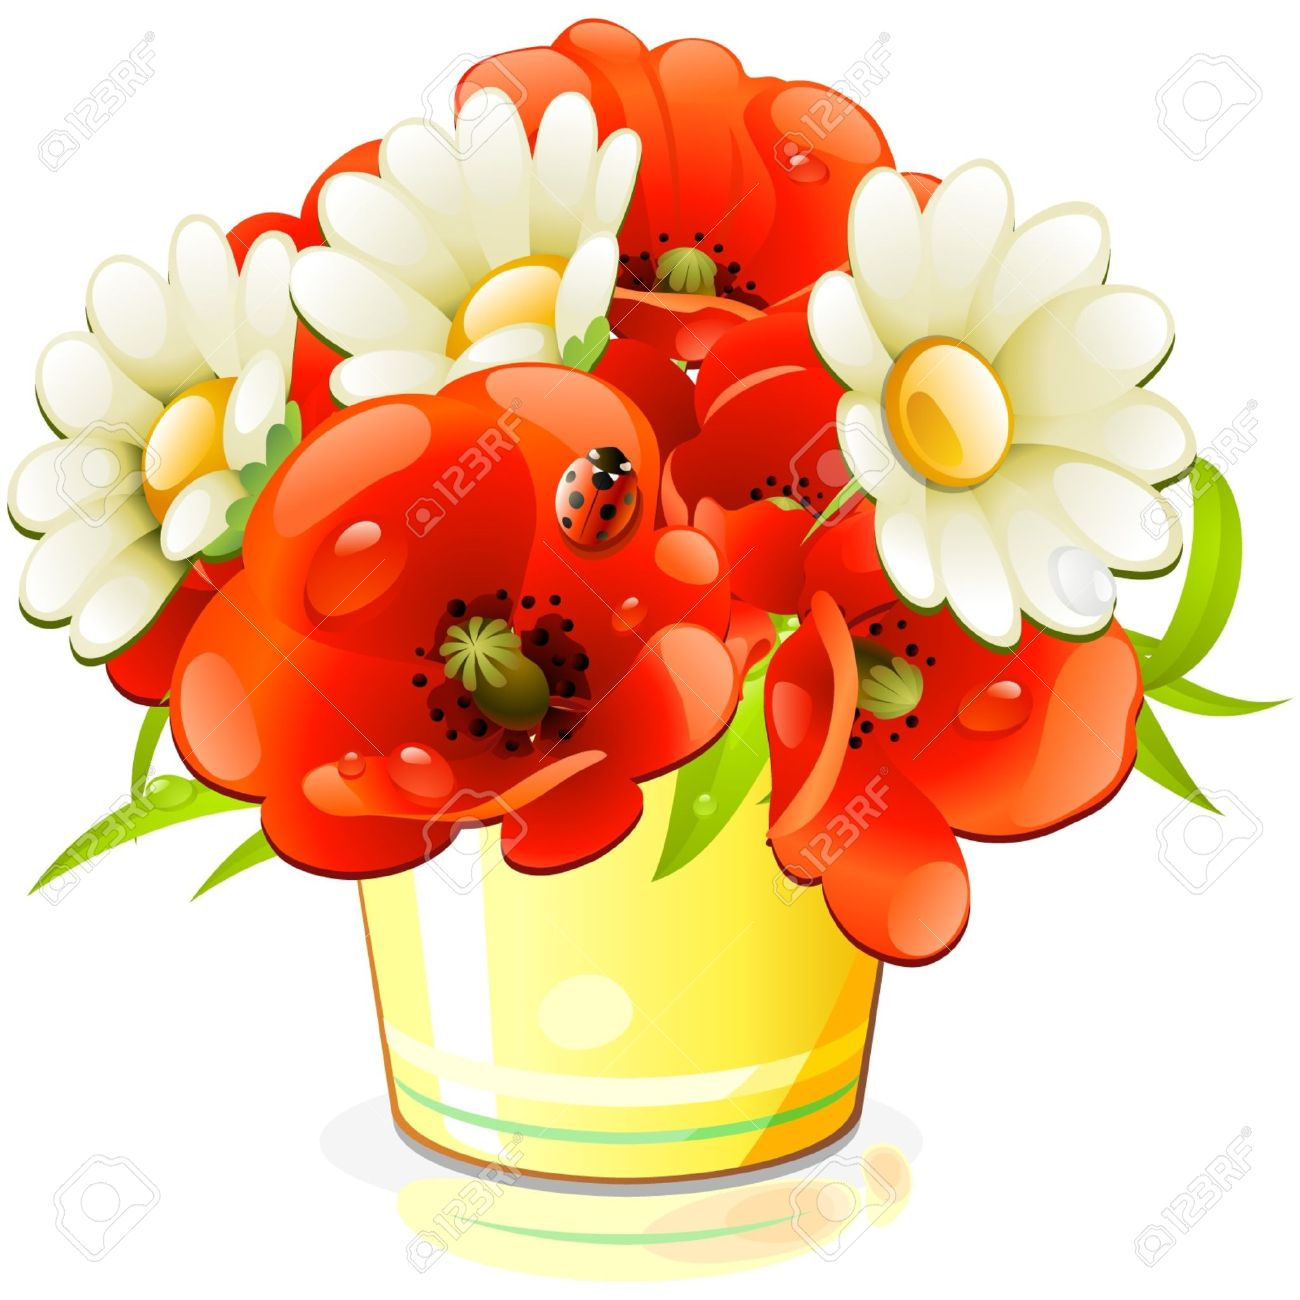 Pictures Of Bouquet Free Download Best Pictures Of Bouquet On